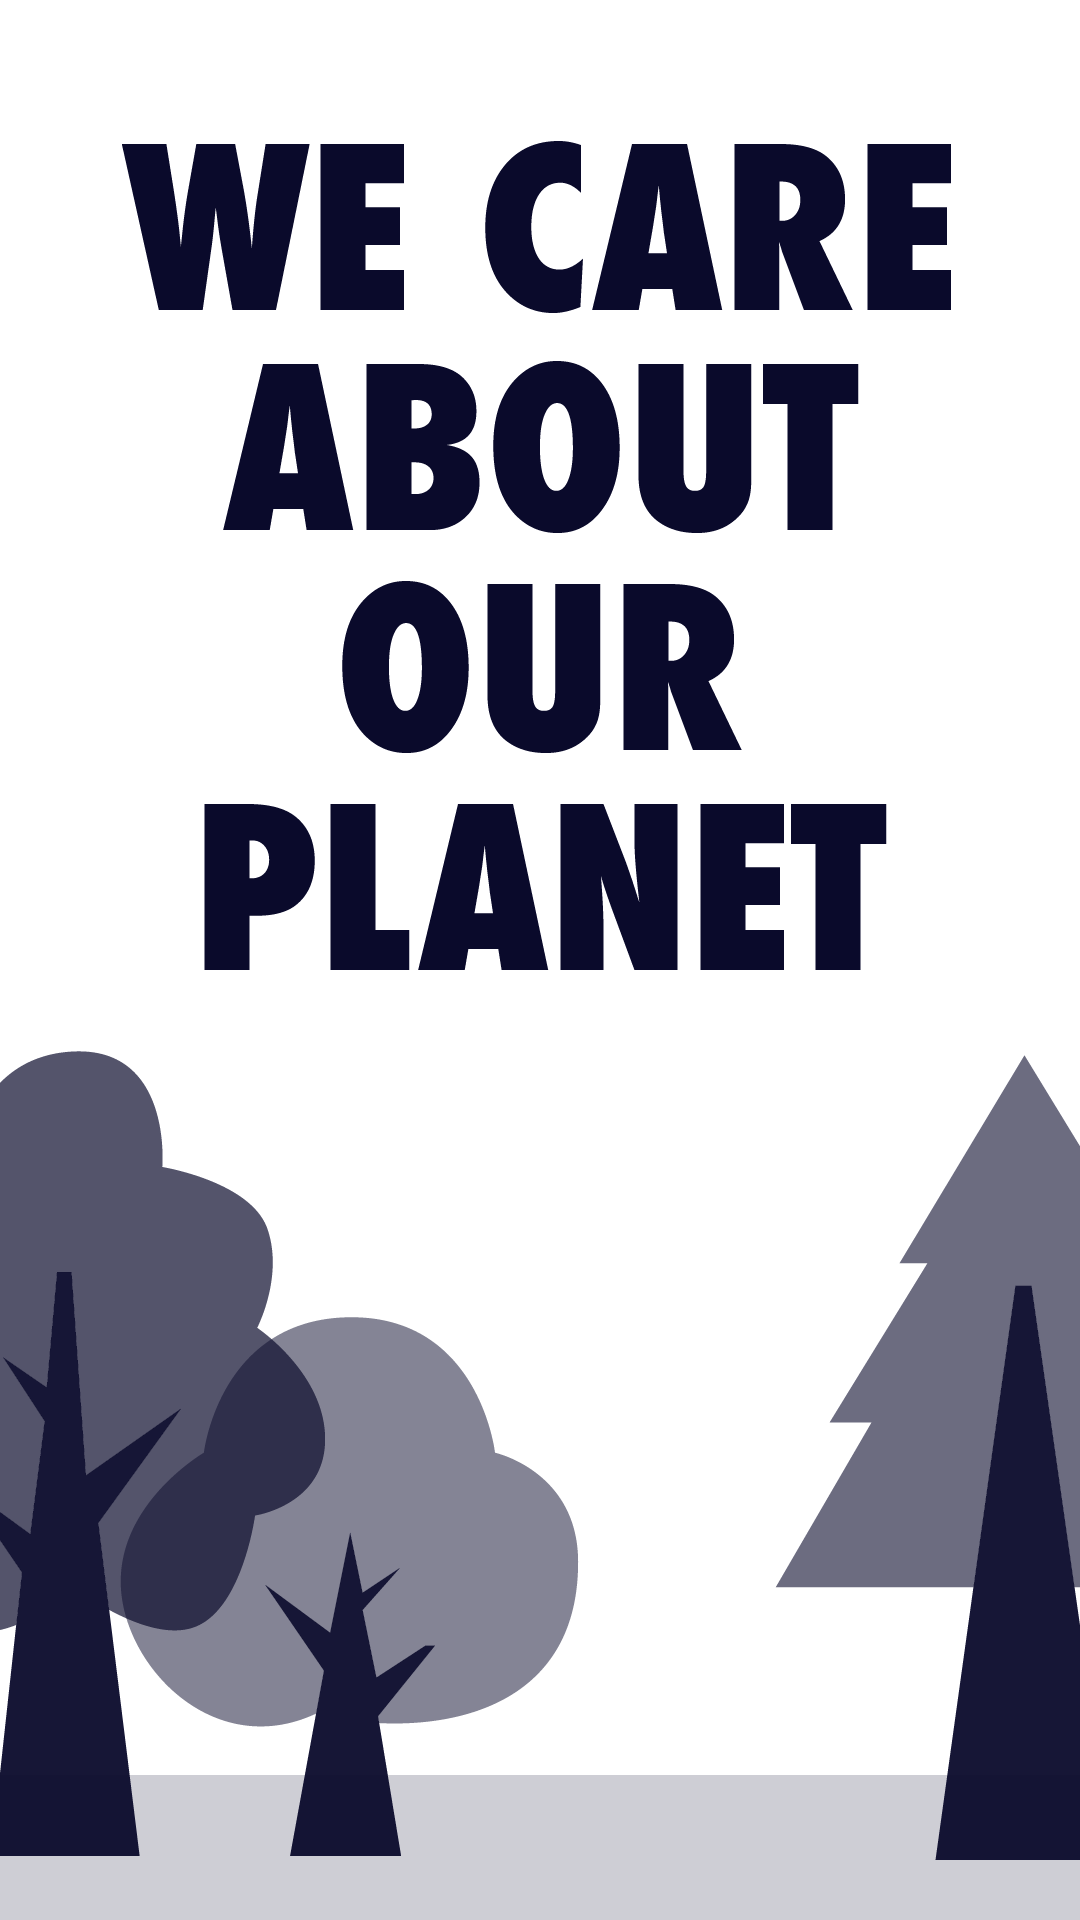 planting trees and caring for the planet